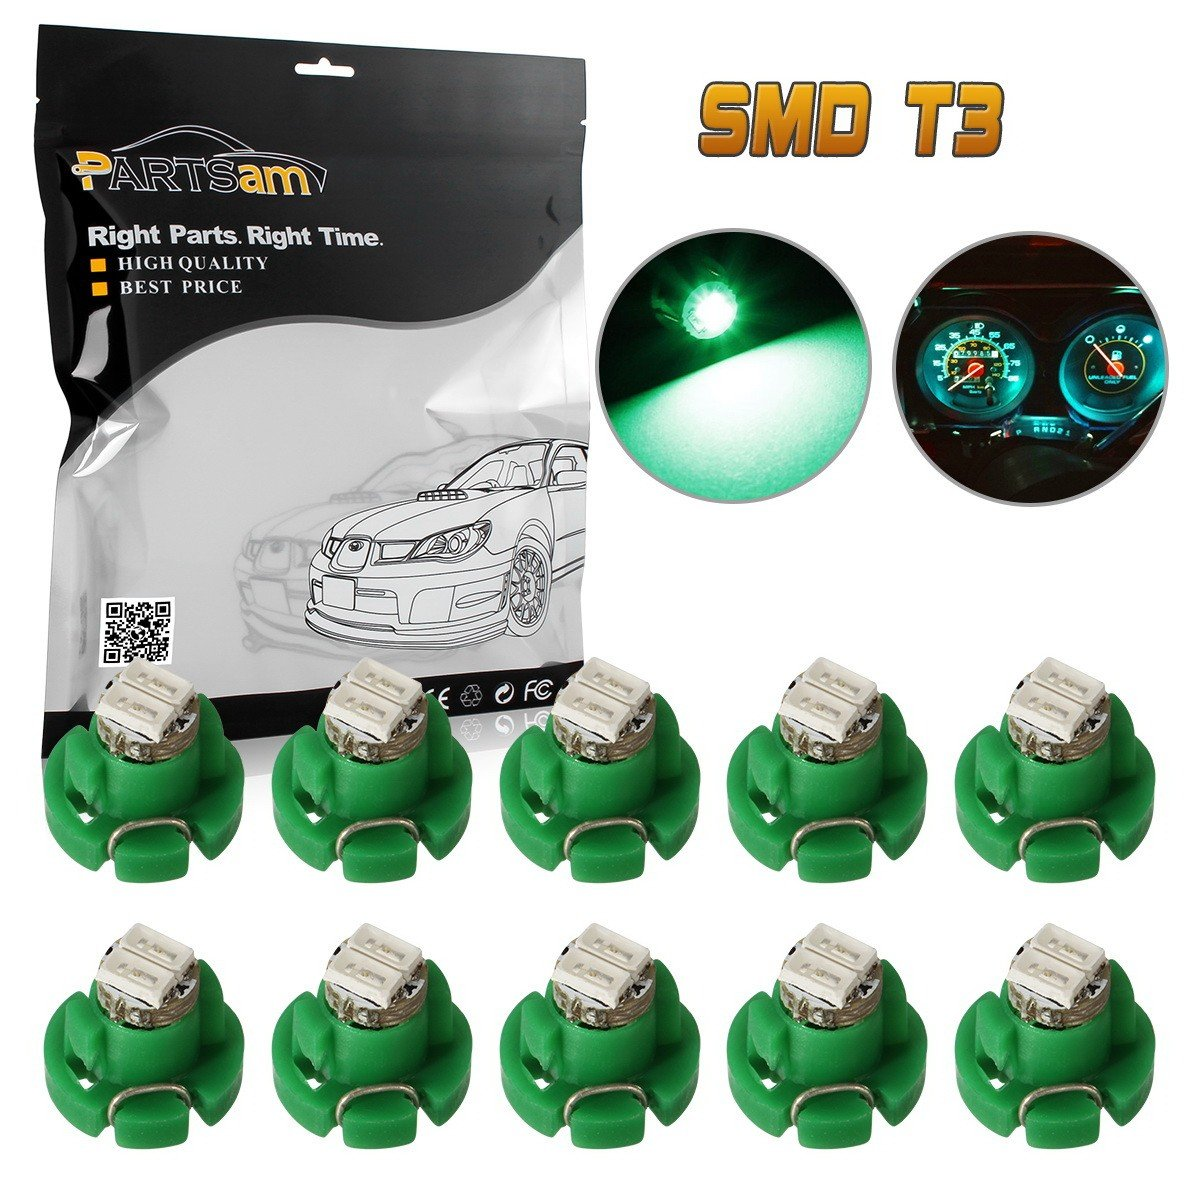 Partsam 10 x Green T3 Neo Wedge 2 SMD LED For A/C Heater Climate Control Instrument Panel